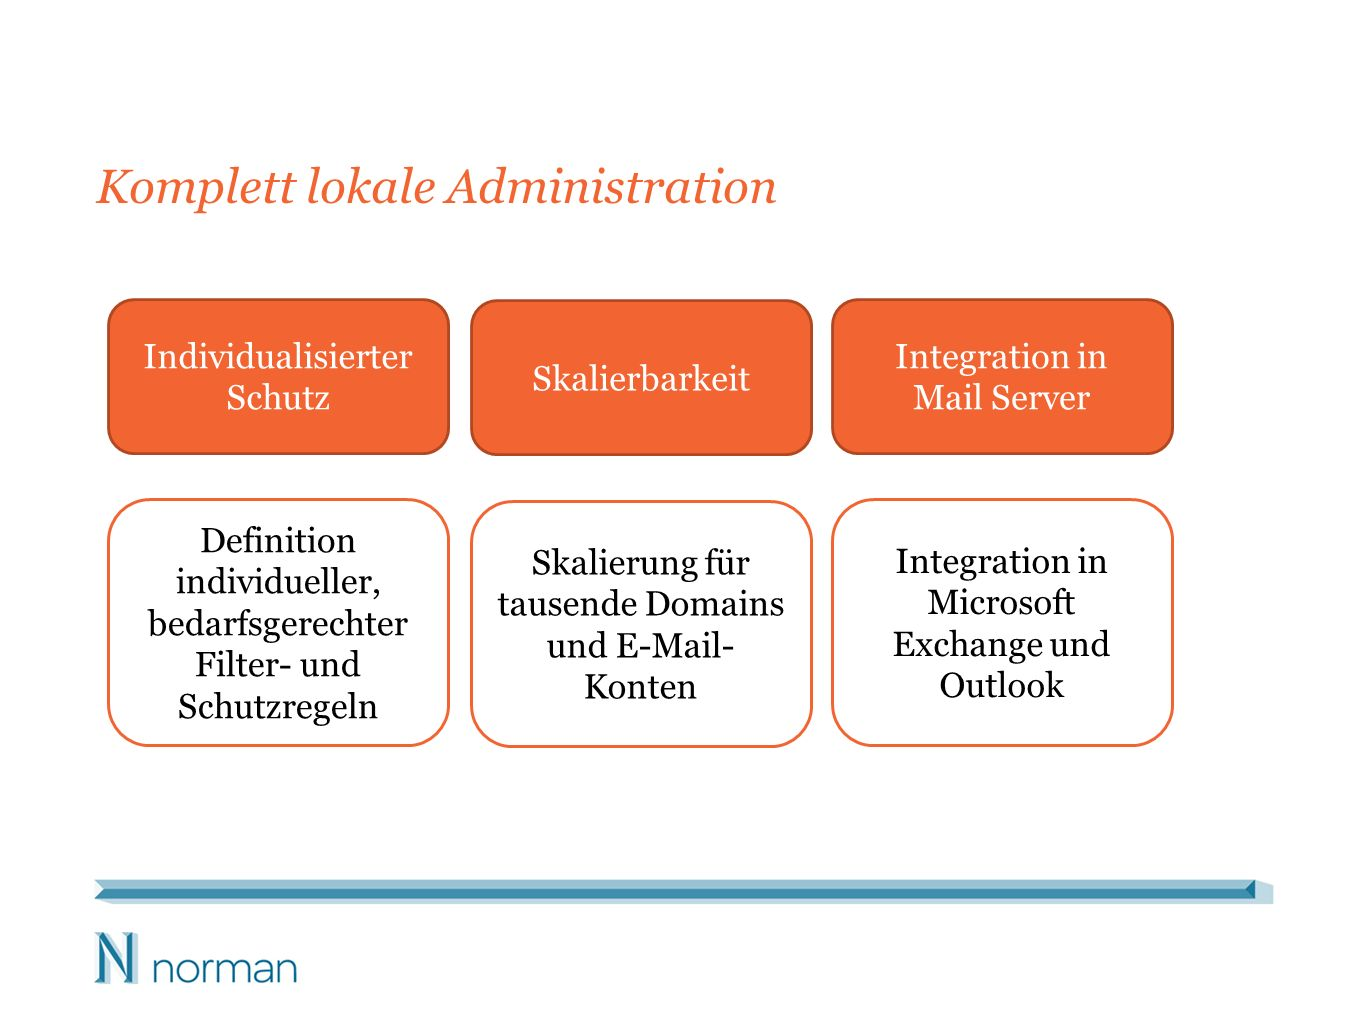 Komplett lokale Administration Individualisierter Schutz Skalierbarkeit Integration in Mail Server Definition individueller, bedarfsgerechter Filter-